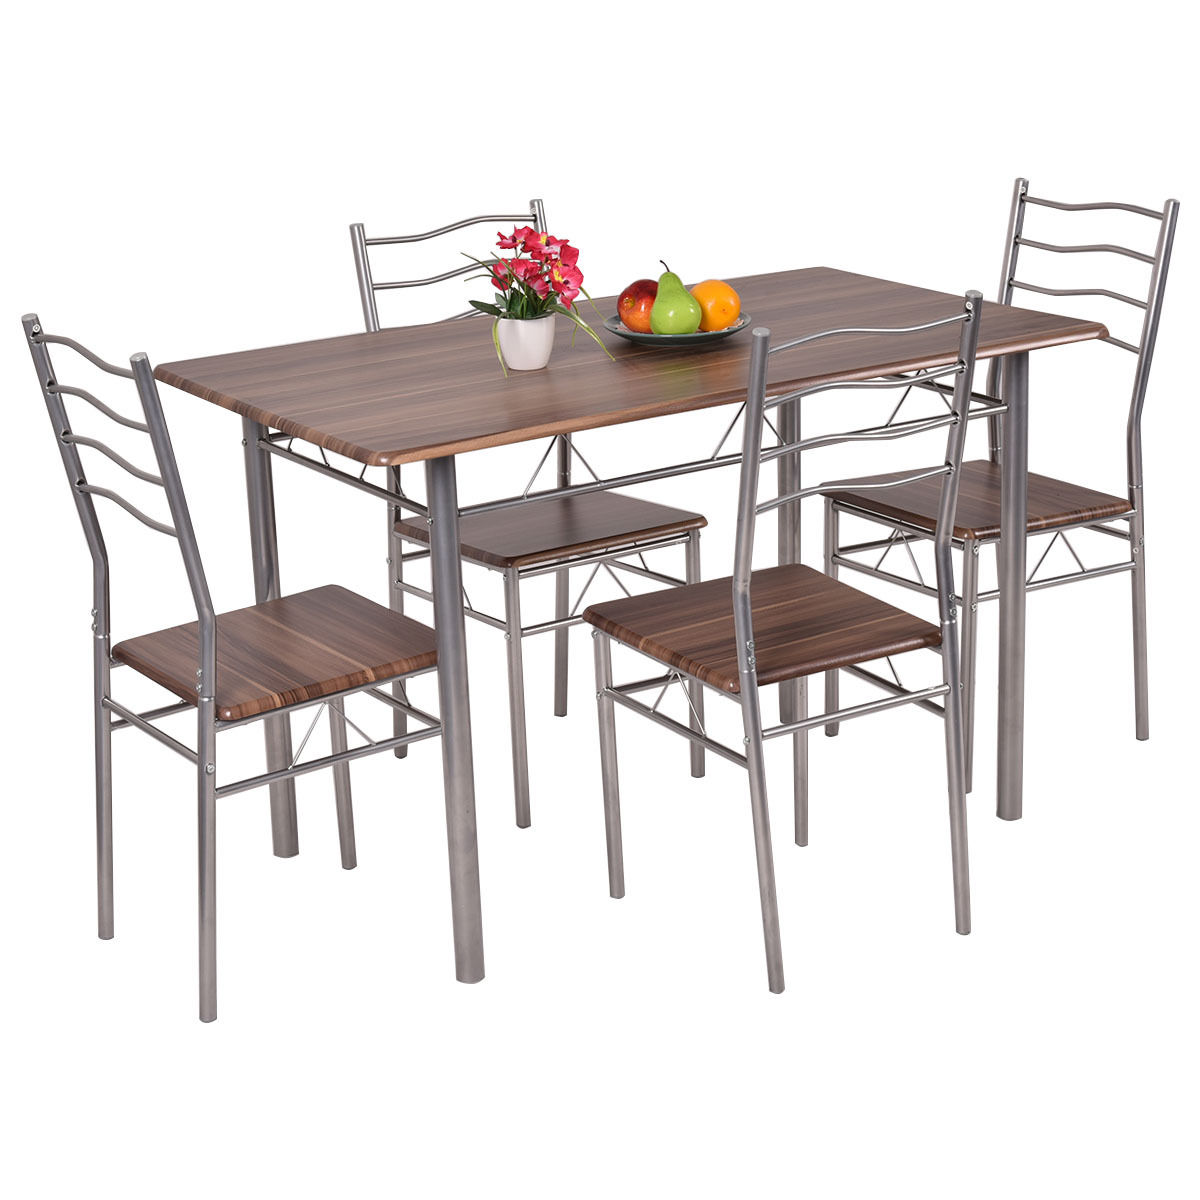 Bon Mainstays 5 Piece Glass Top Metal Dining Set   Walmart.com